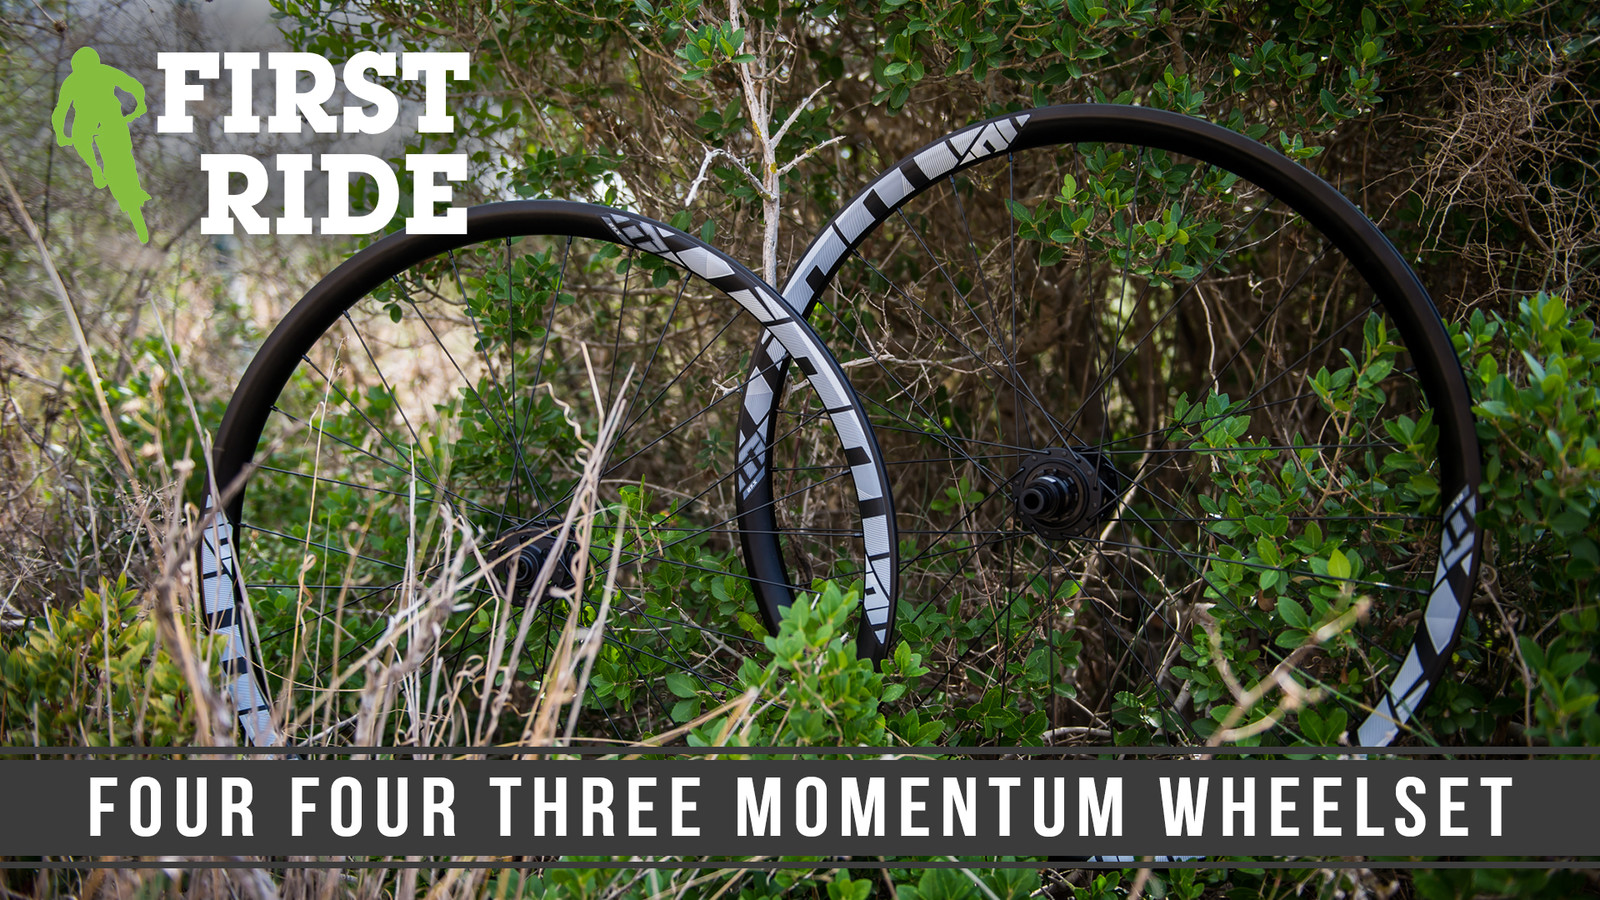 First Ride: Four Four Three Momentum Wheelset